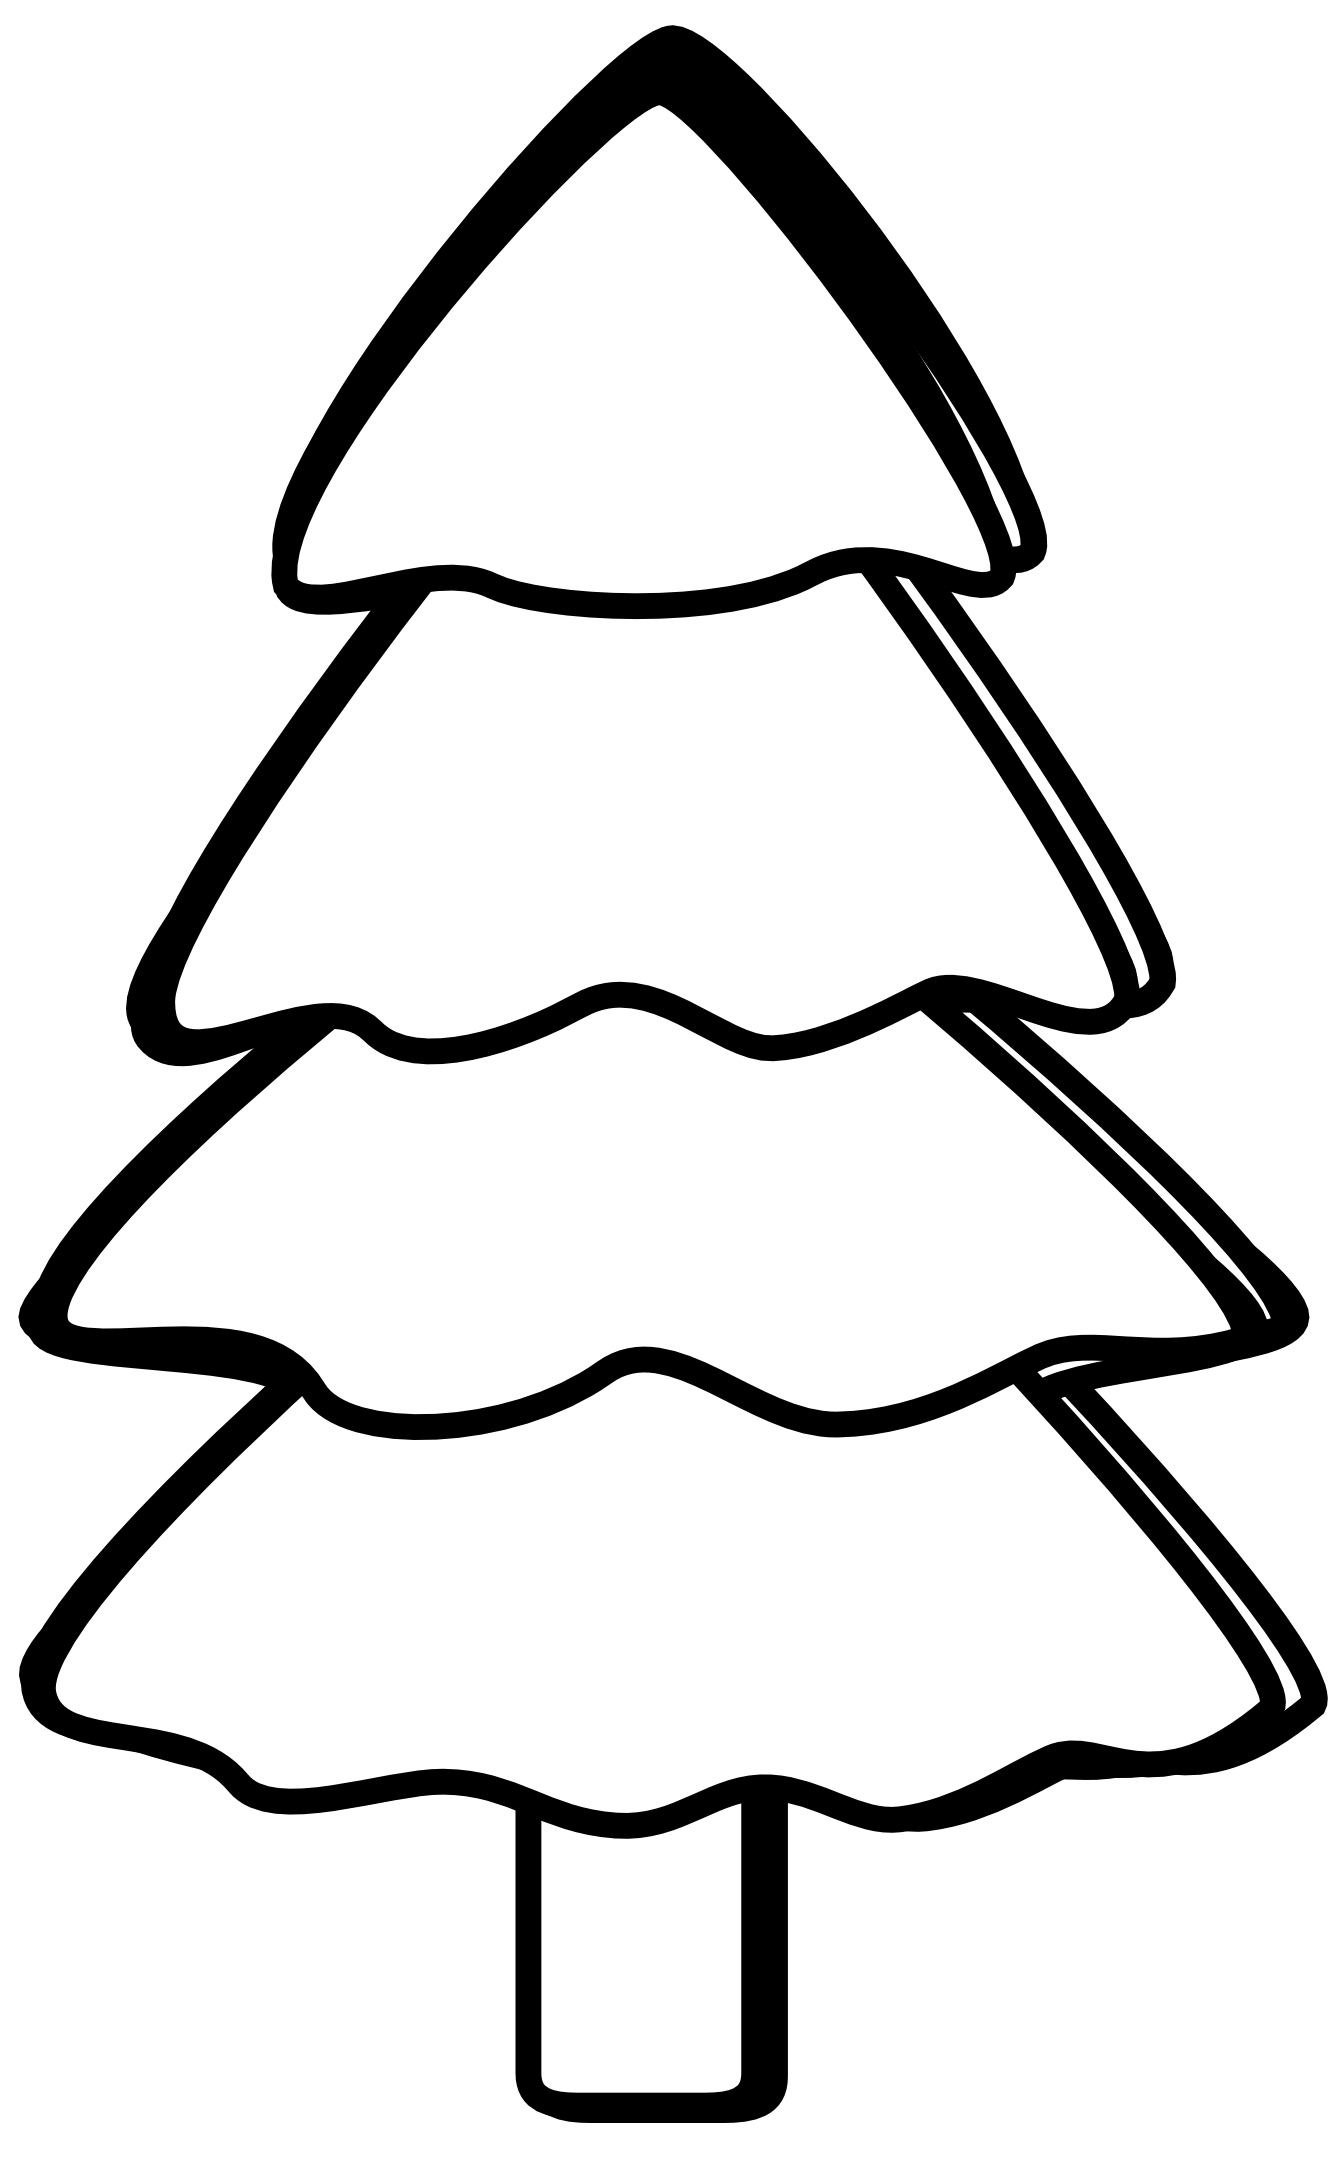 1331x2159 Tree Clipart Black And White